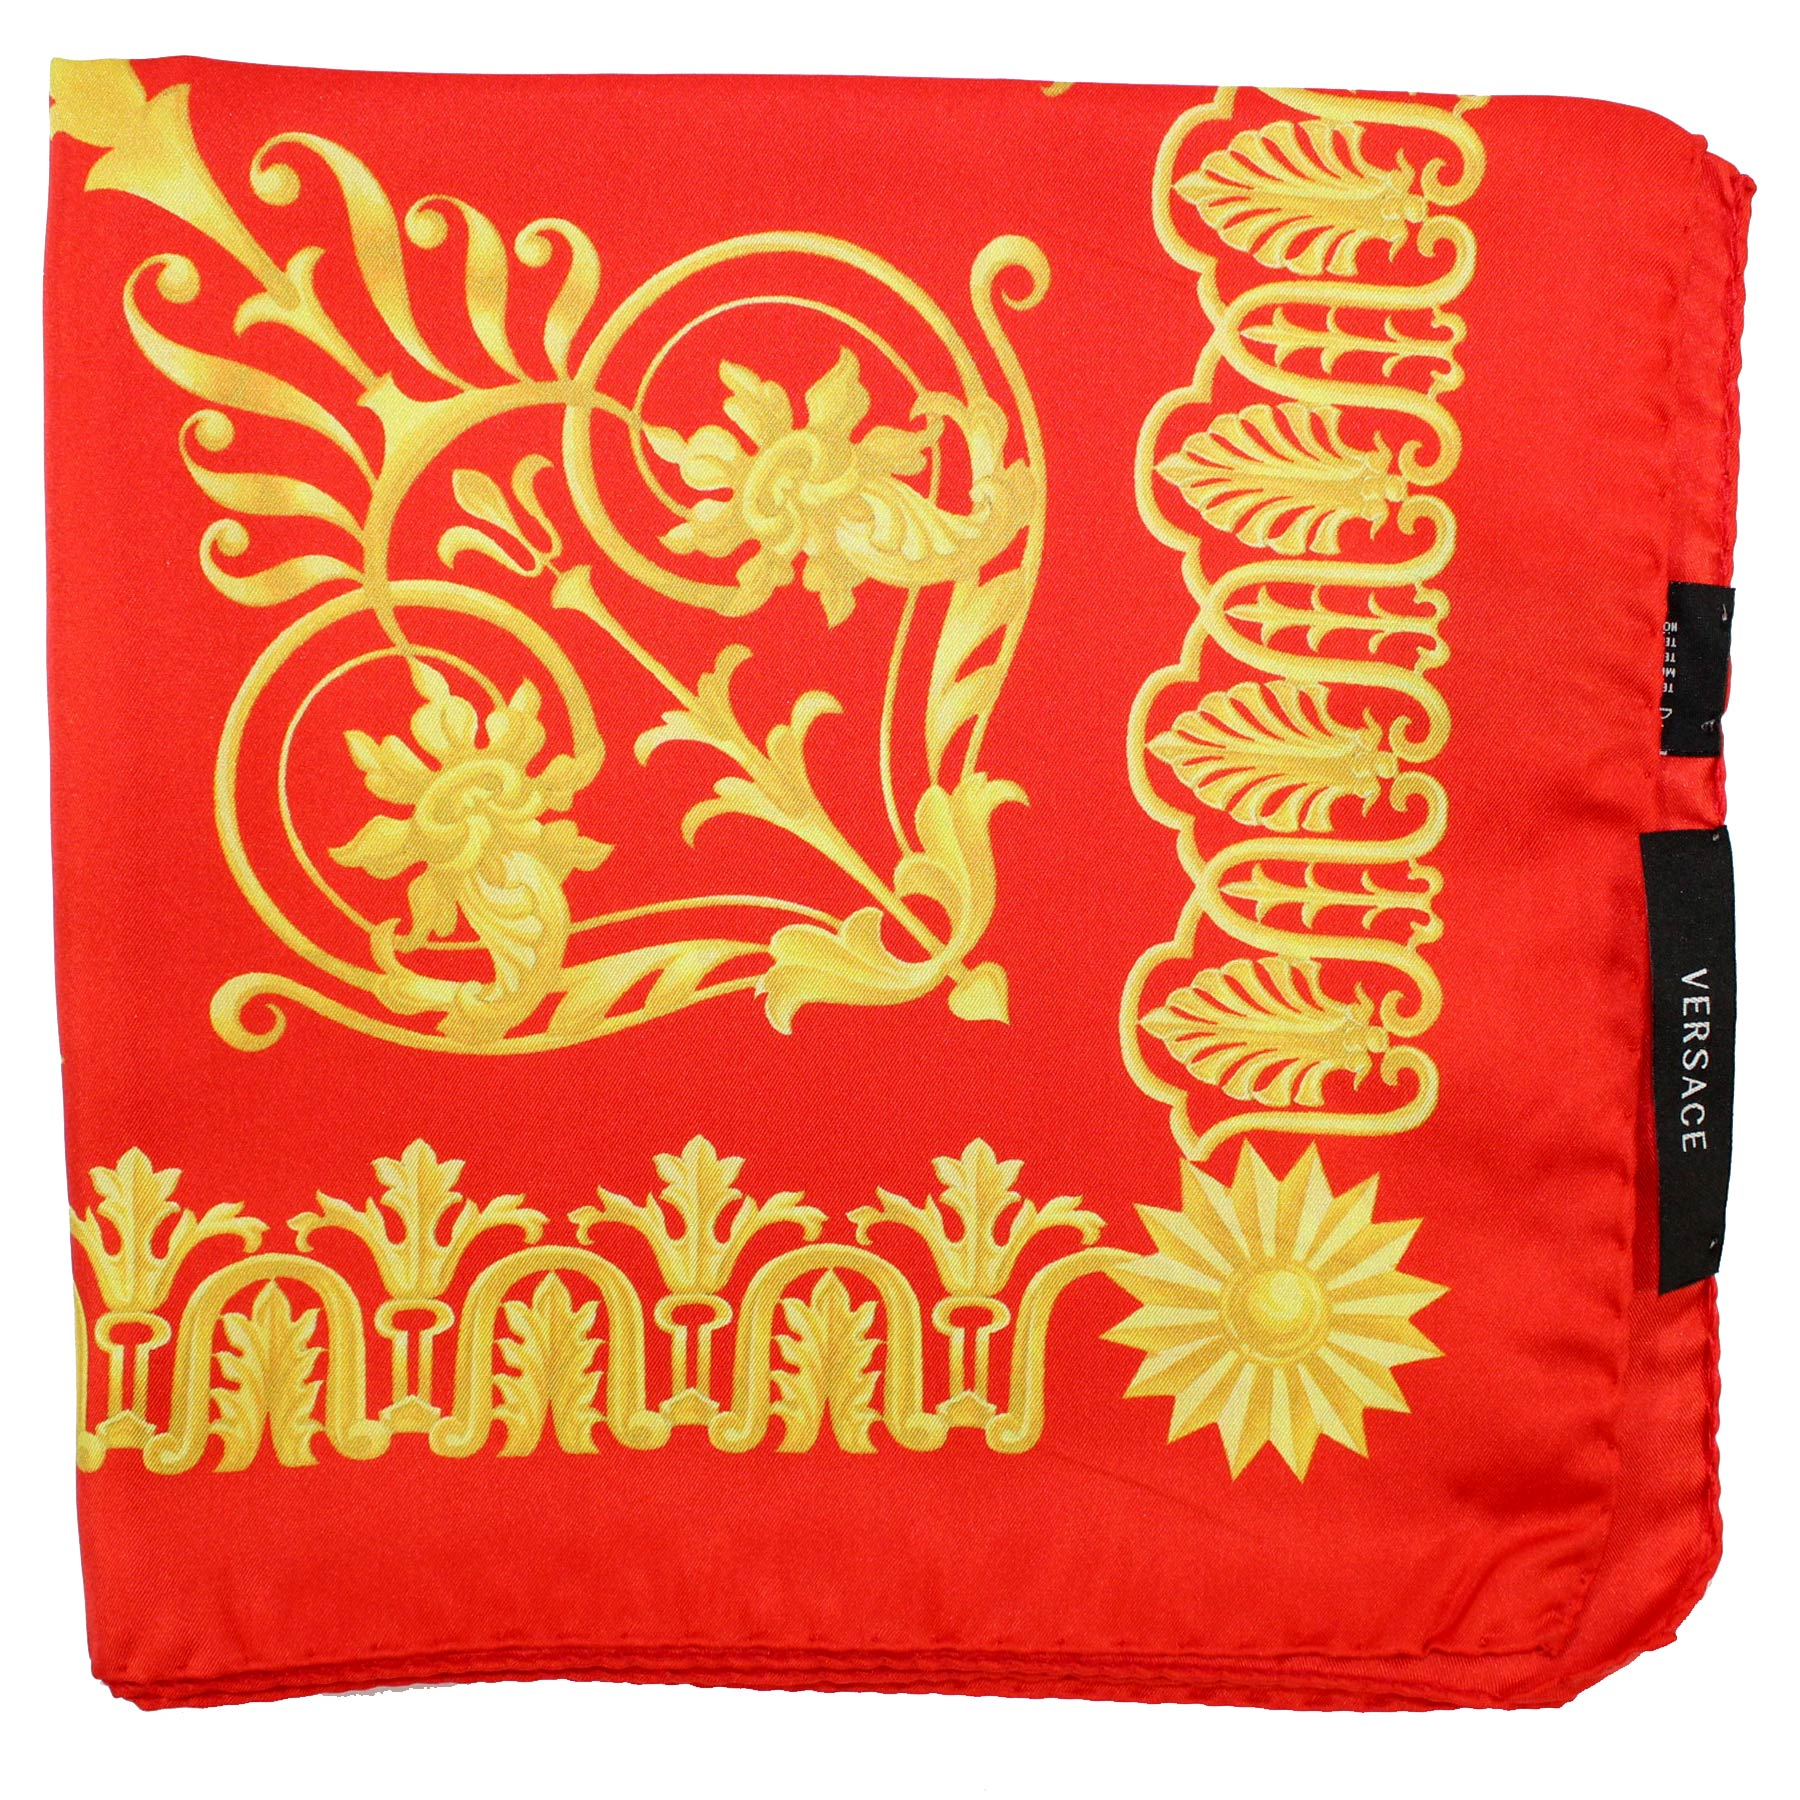 Versace Scarf Red Mustard Gold - Large Twill Silk Square Scarf SALE